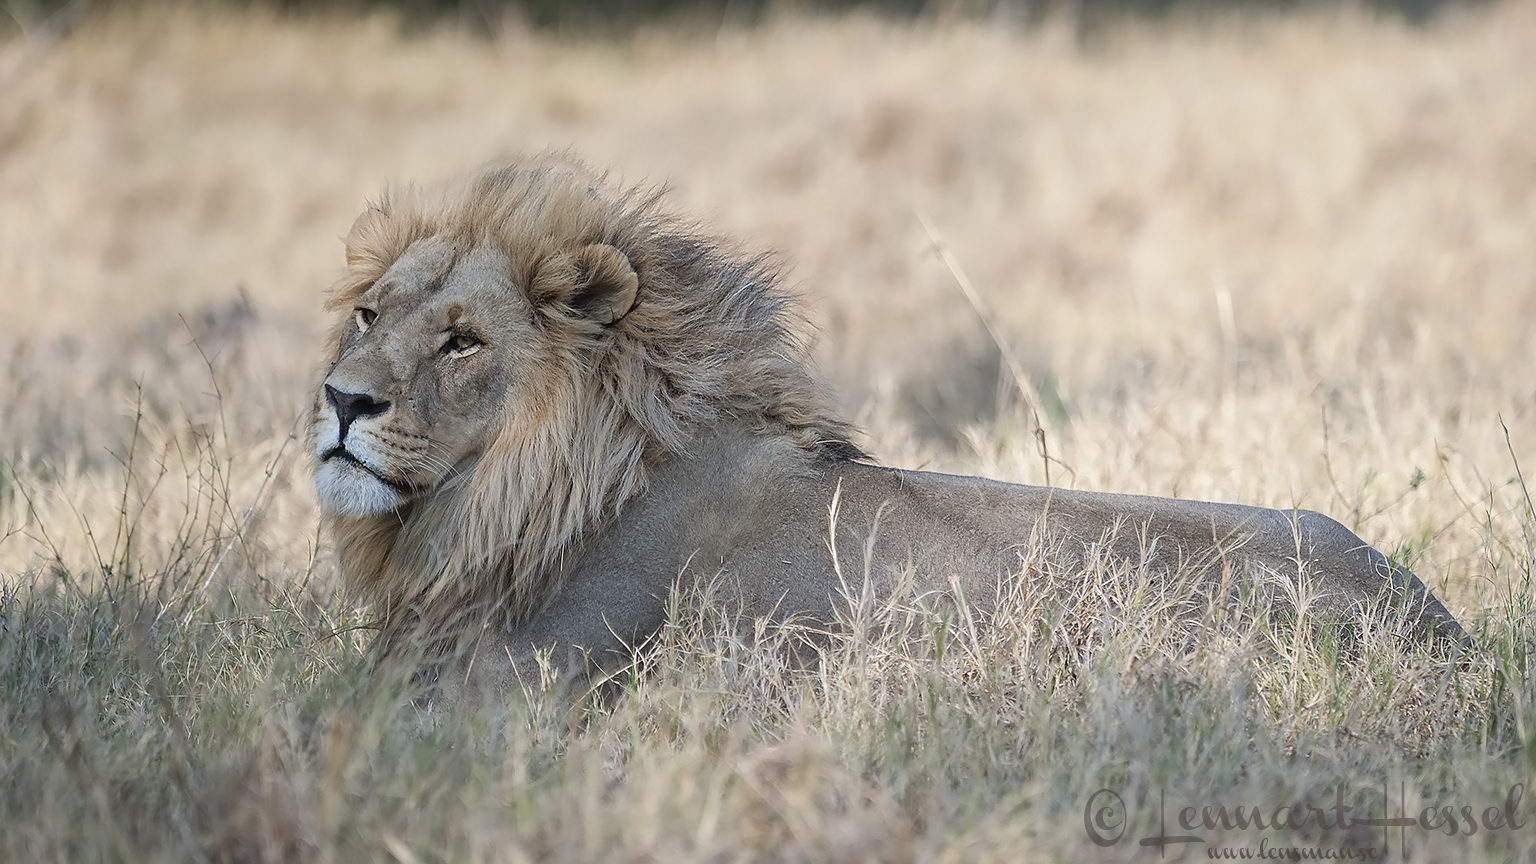 Male Lion in Khwai Community Area, Botswana